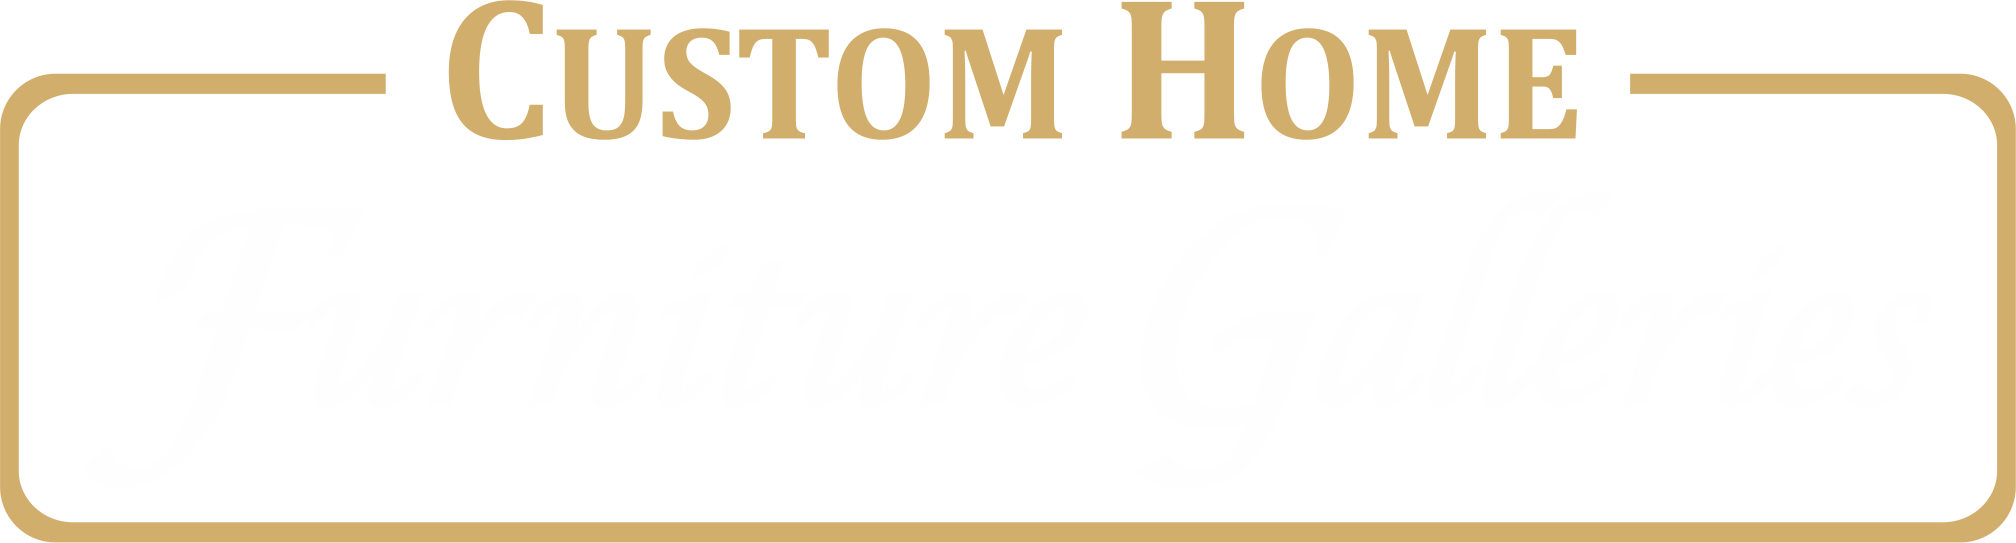 Custom Home Furniture Galleries Logo